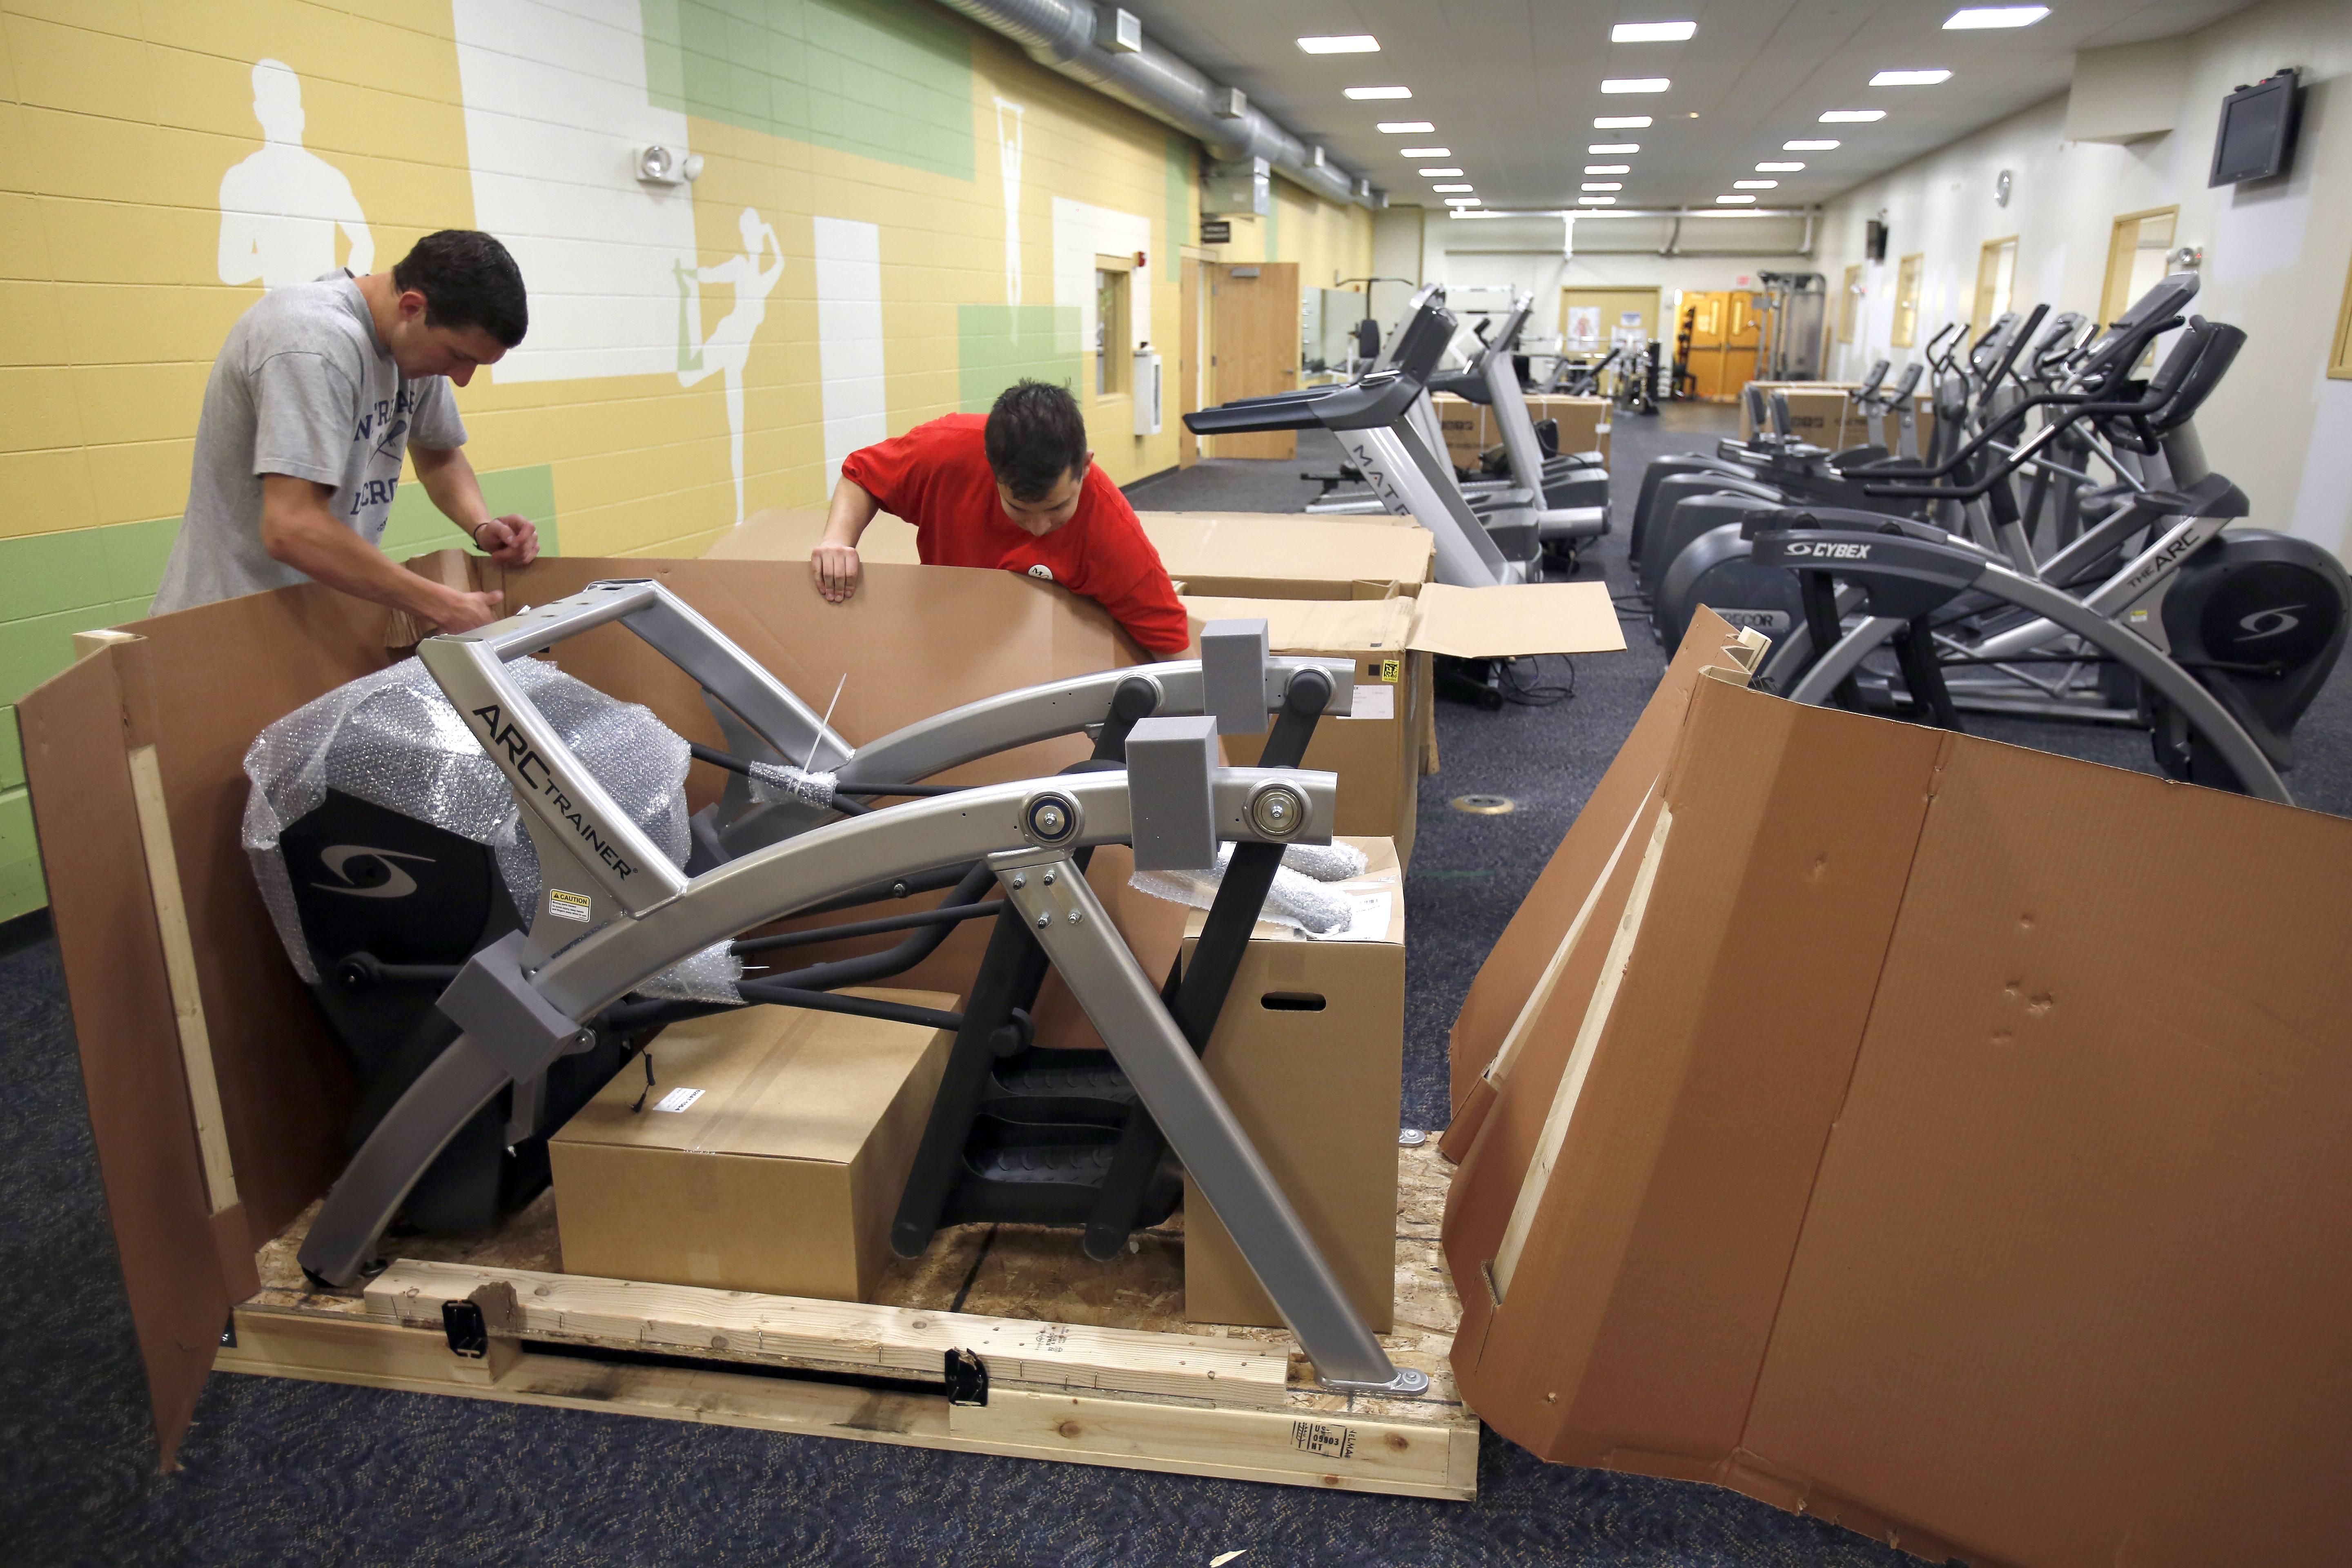 Nick Winter, left, and Evan Bennett, employees of Midwest Commercial Fitness, unpack new disabled-friendly fitness equipment Tuesday at the Huntley Park District Fitness Center. The center, which now has 20 new machines for cardio and strength training, reopens Monday.